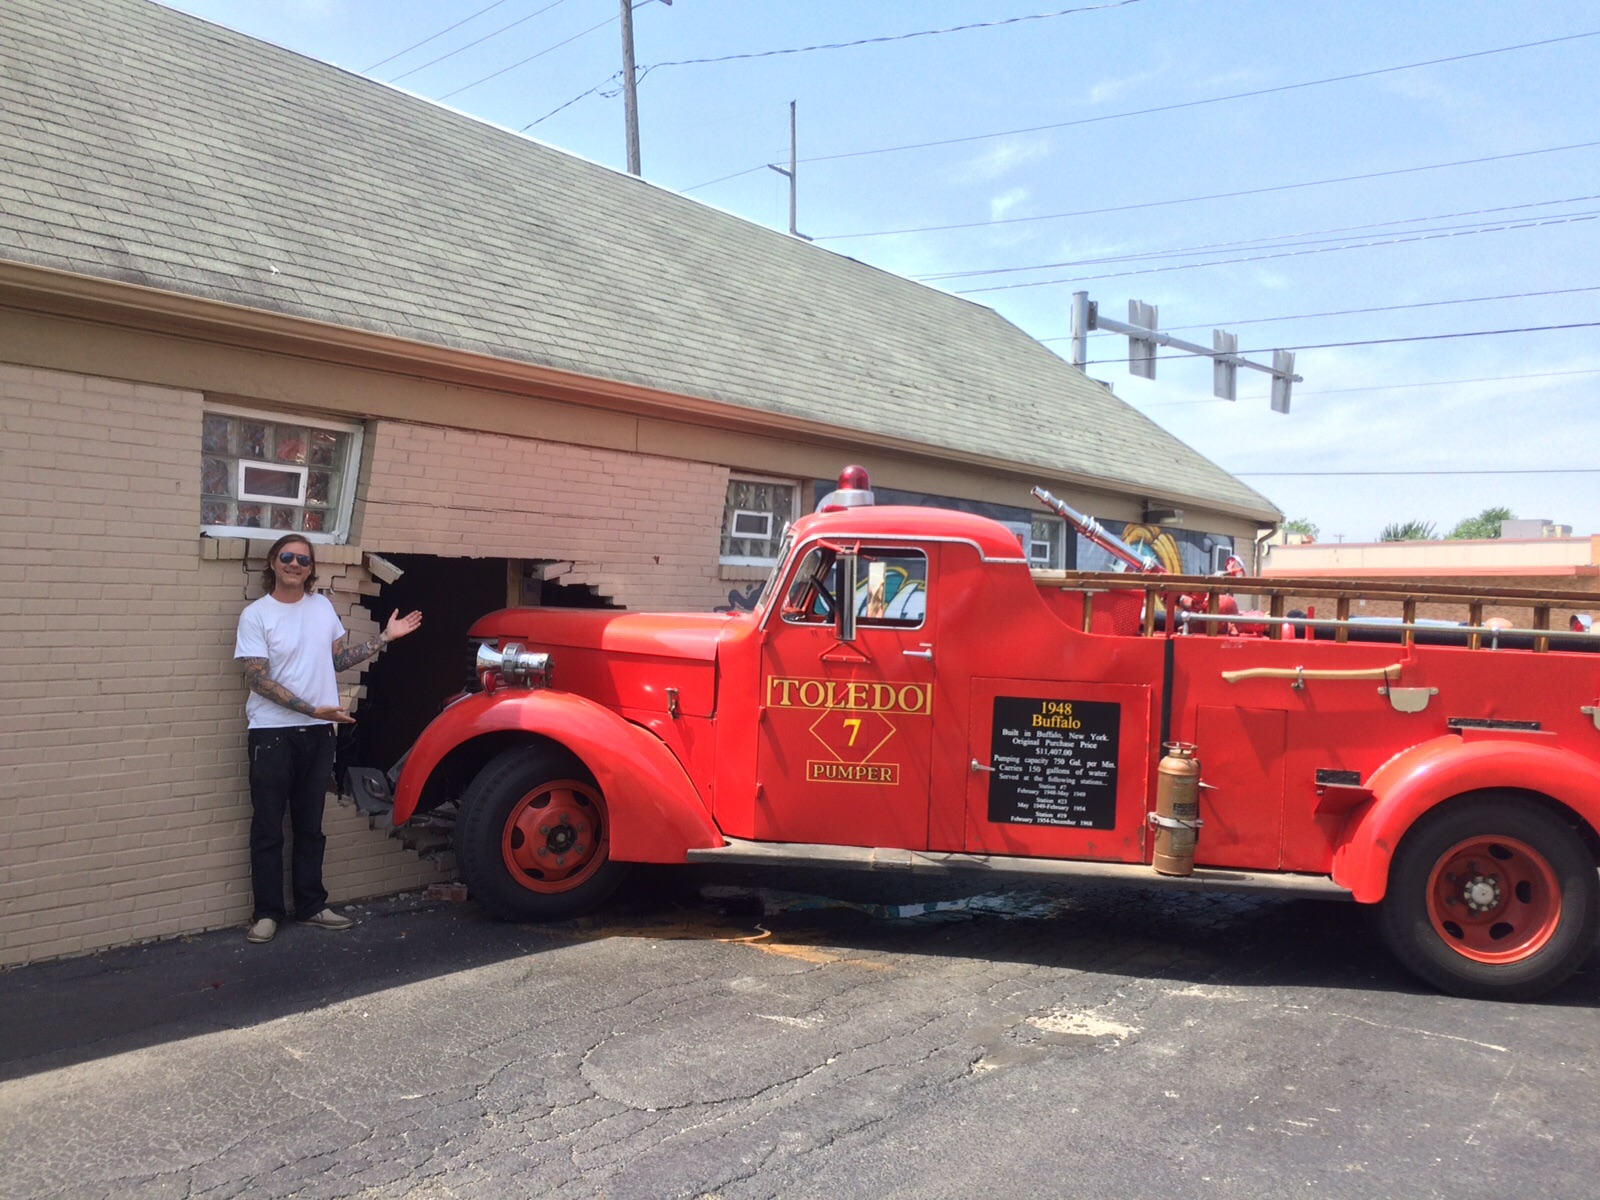 tattoo artist chair wedding stage chairs antique fire truck crashes into west toledo studio - the blade